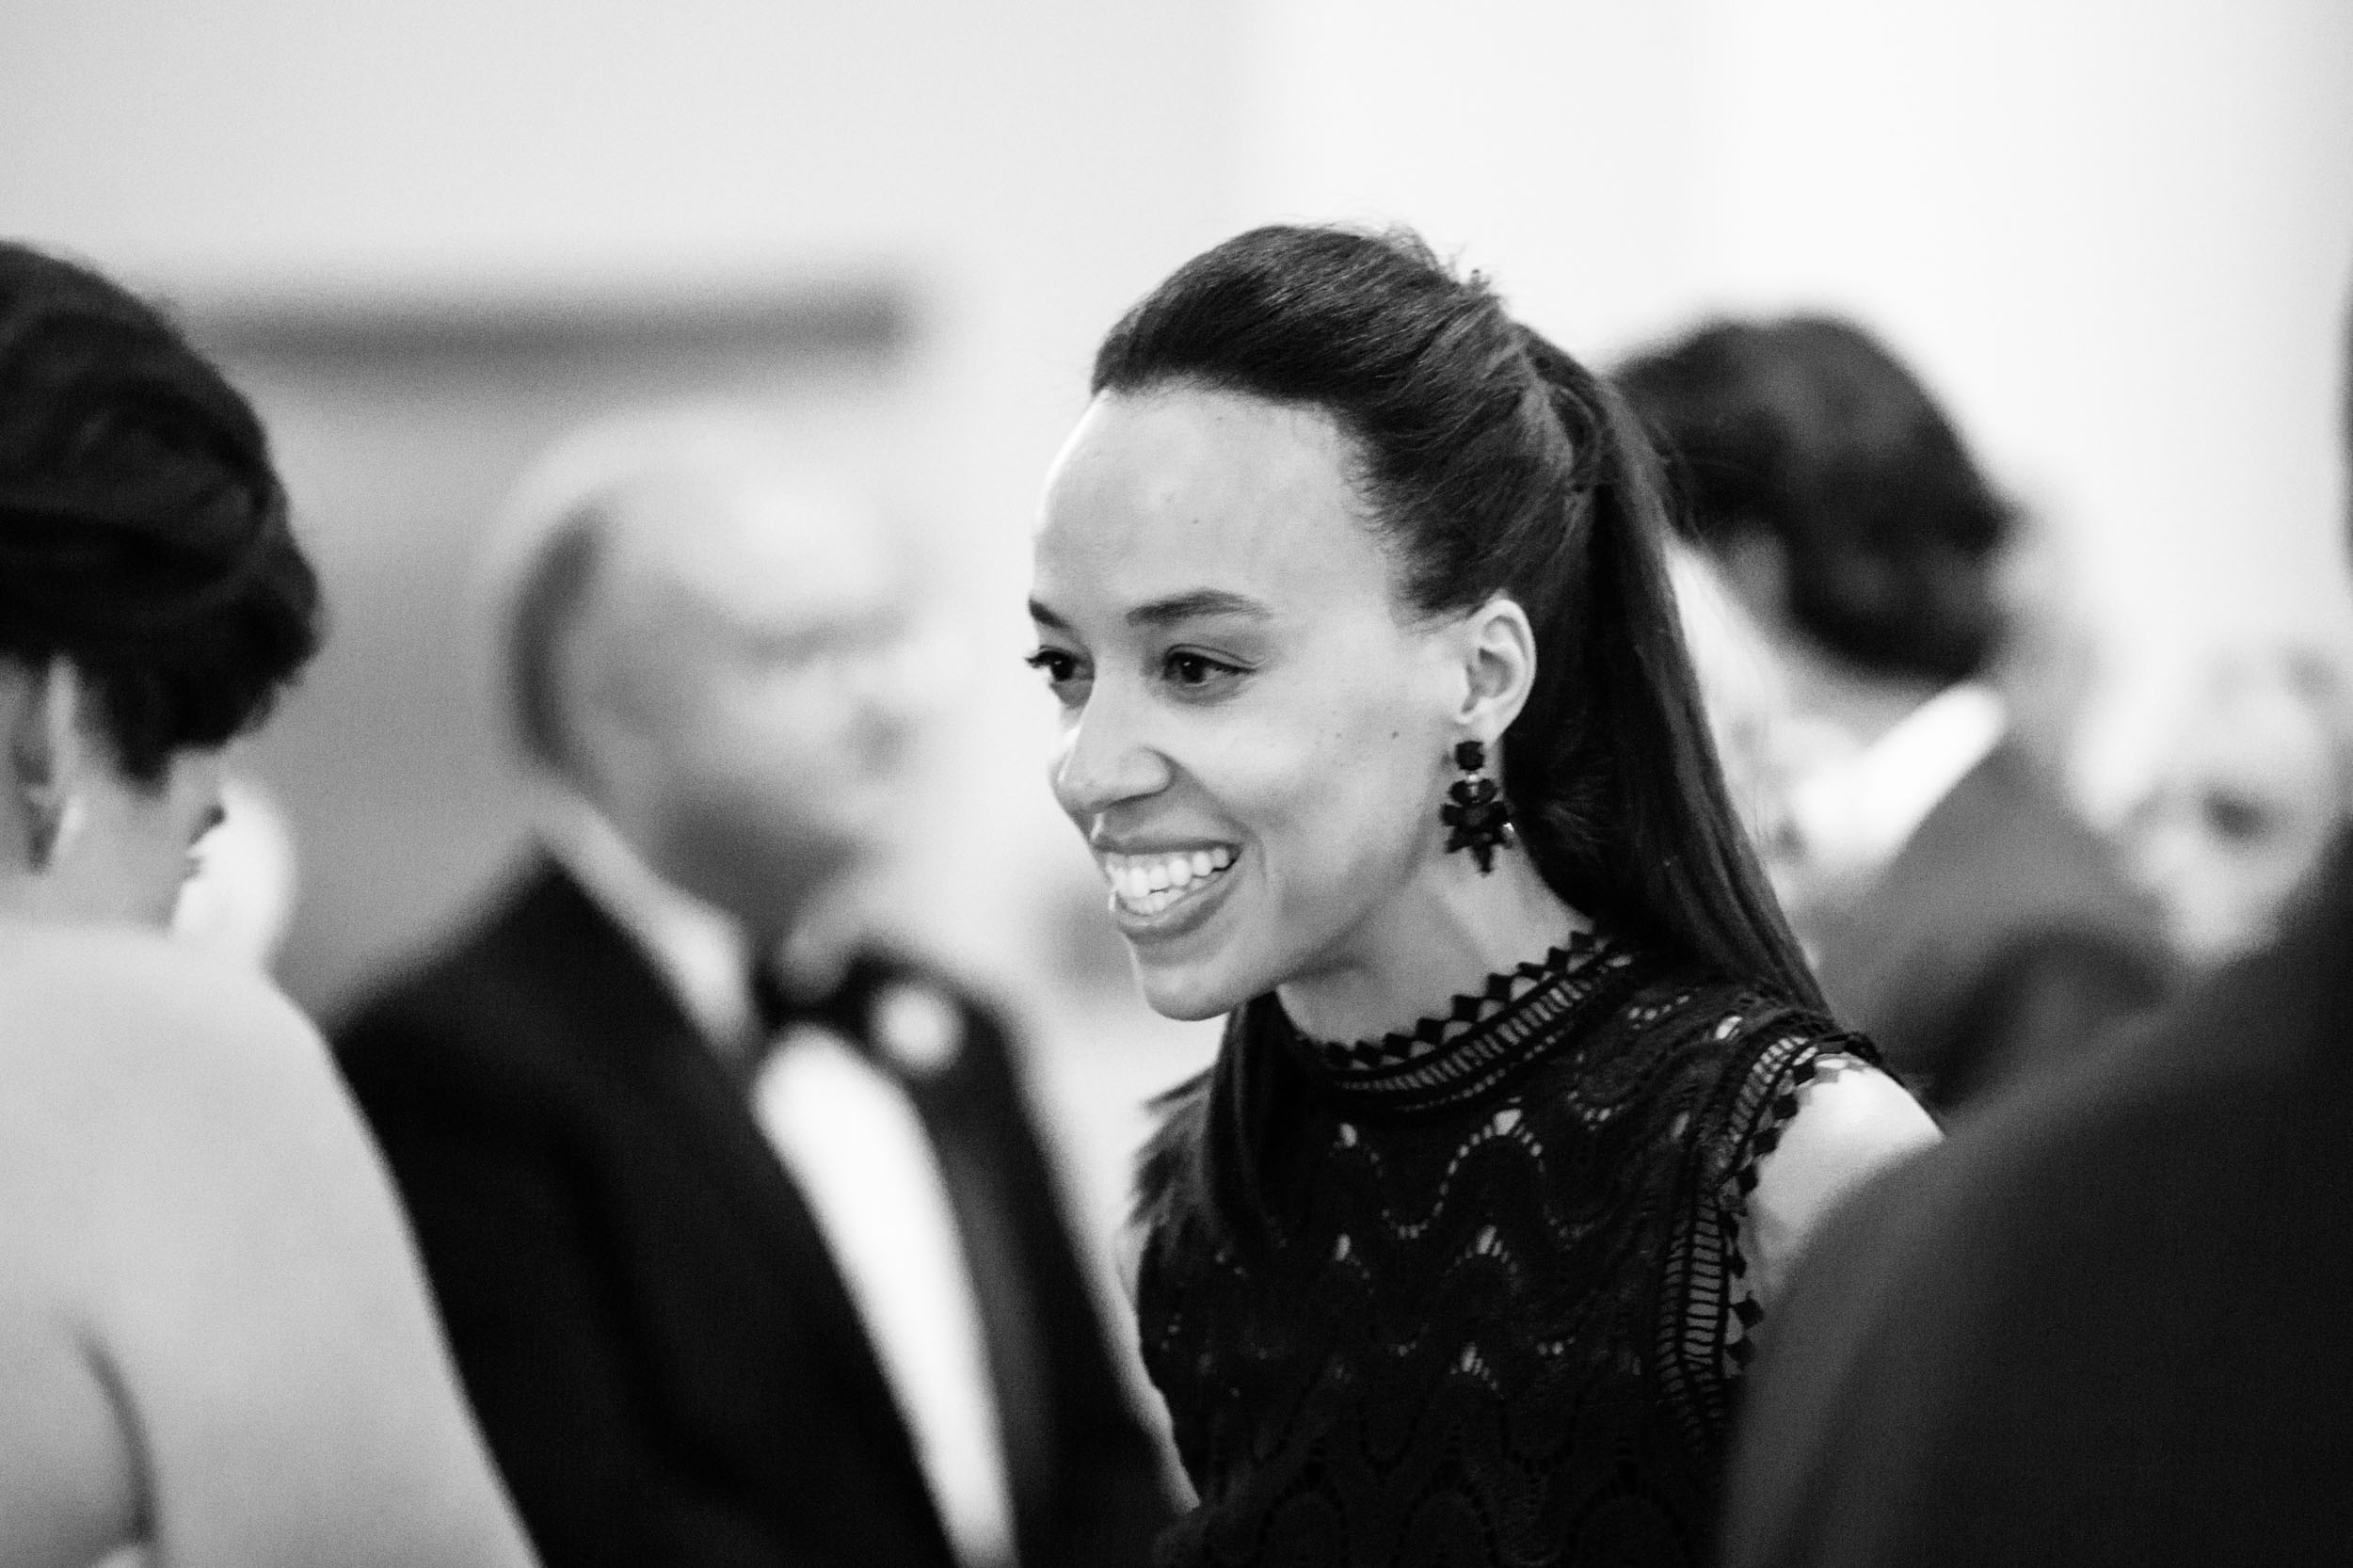 Candid black and white imagery for weddings in Chicago